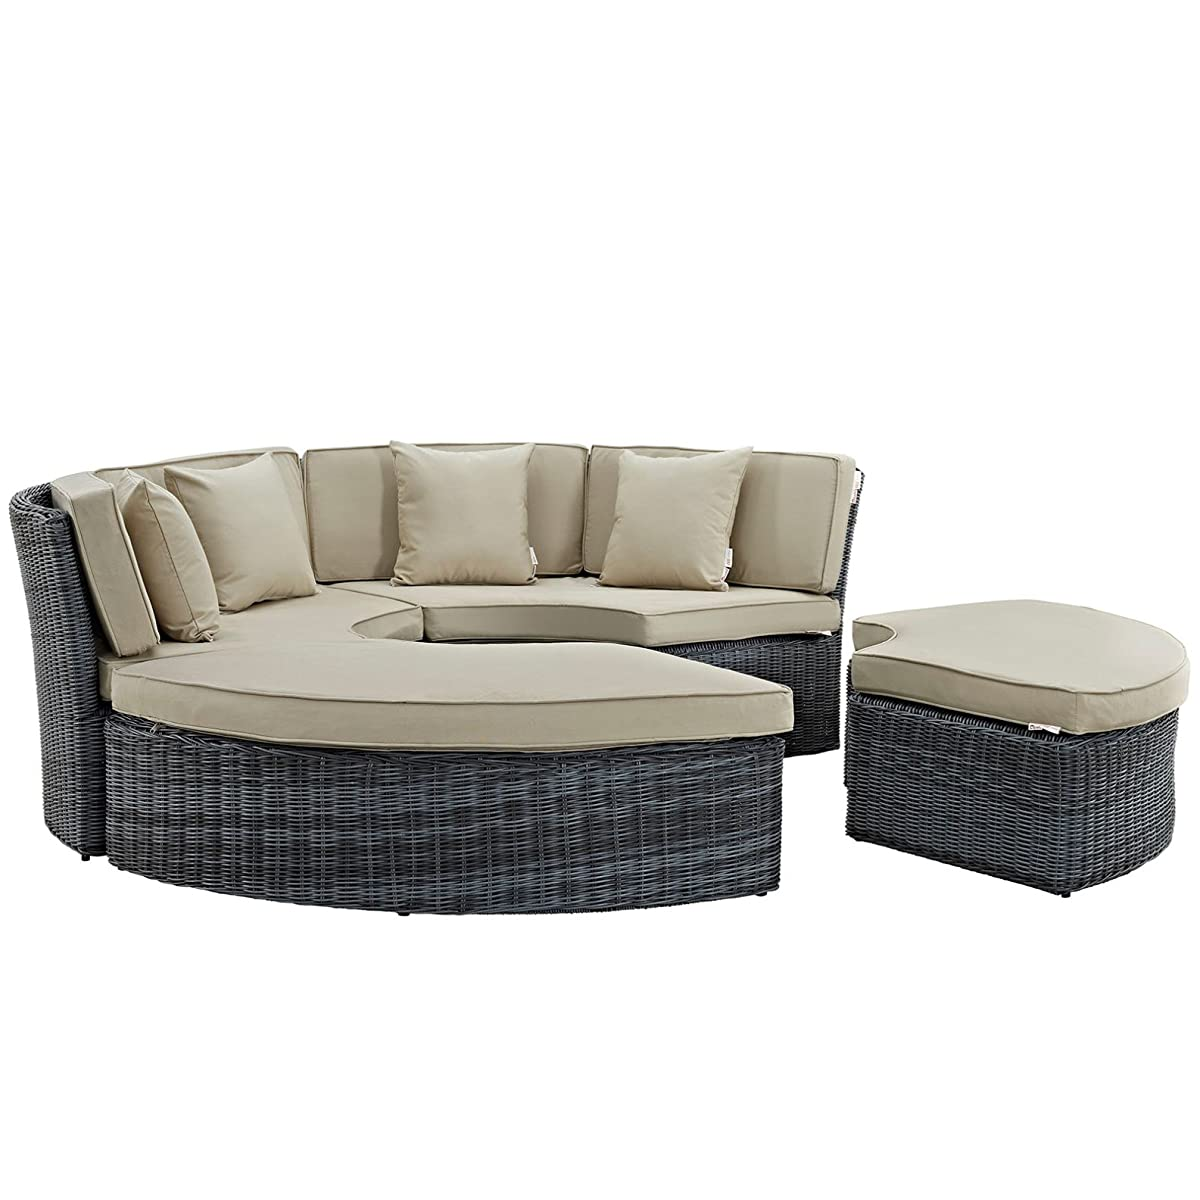 Modern Contemporary Urban Design Outdoor Patio Balcony Round Daybed Sofa, Beige, Rattan